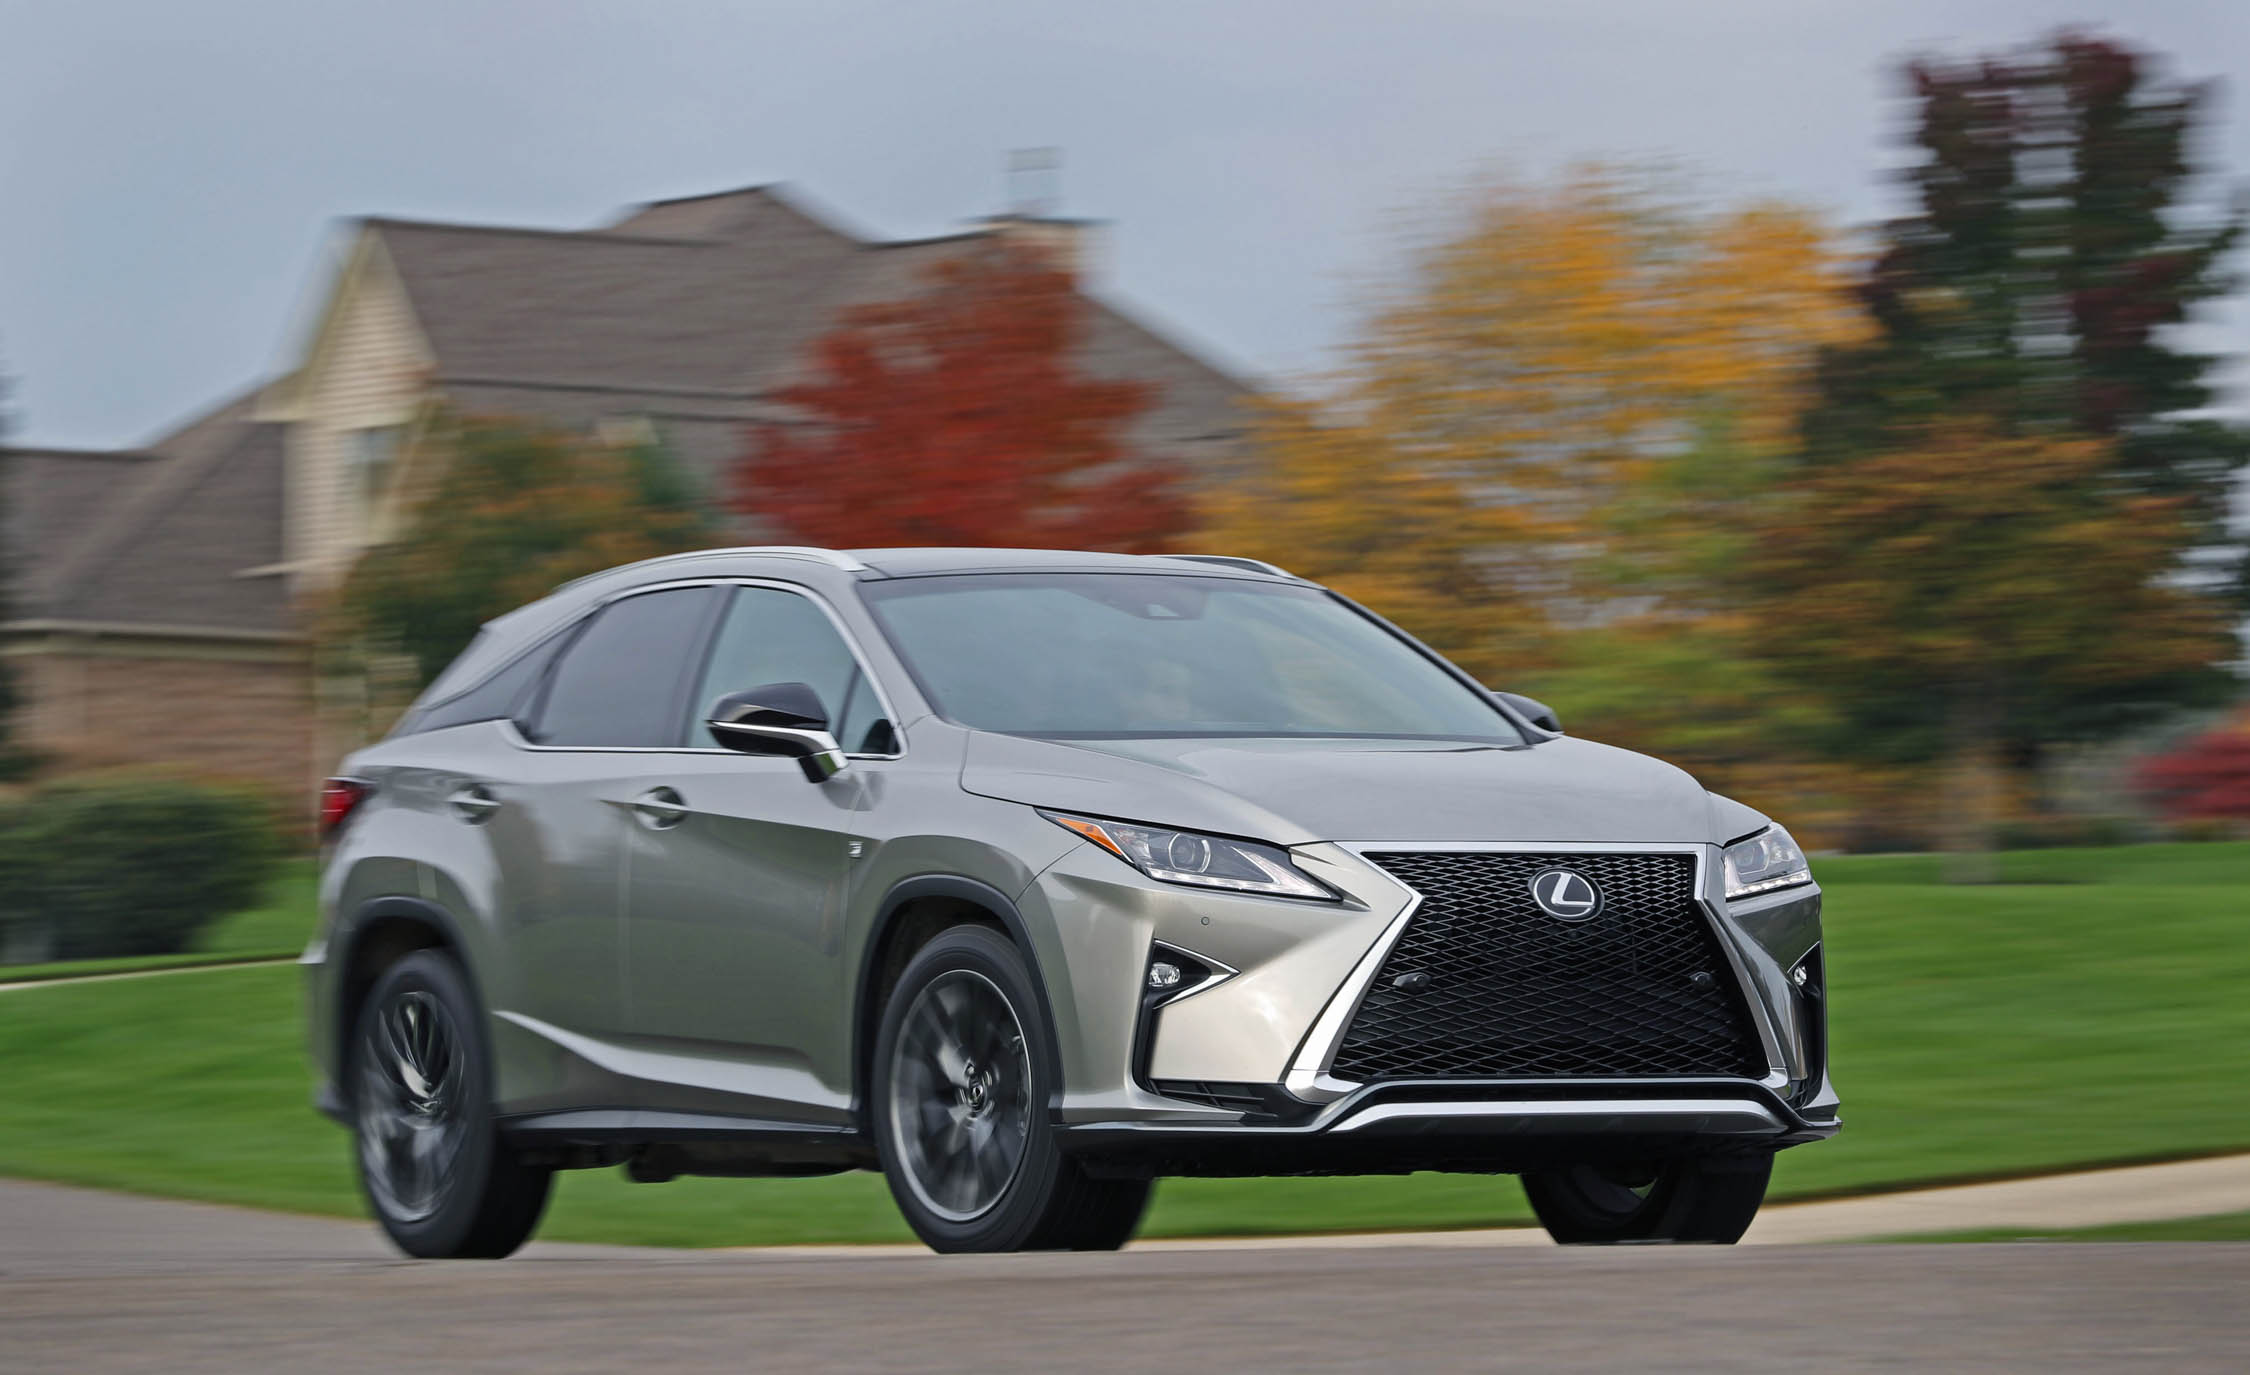 2017 Lexus RX350 F Sport (View 23 of 35)